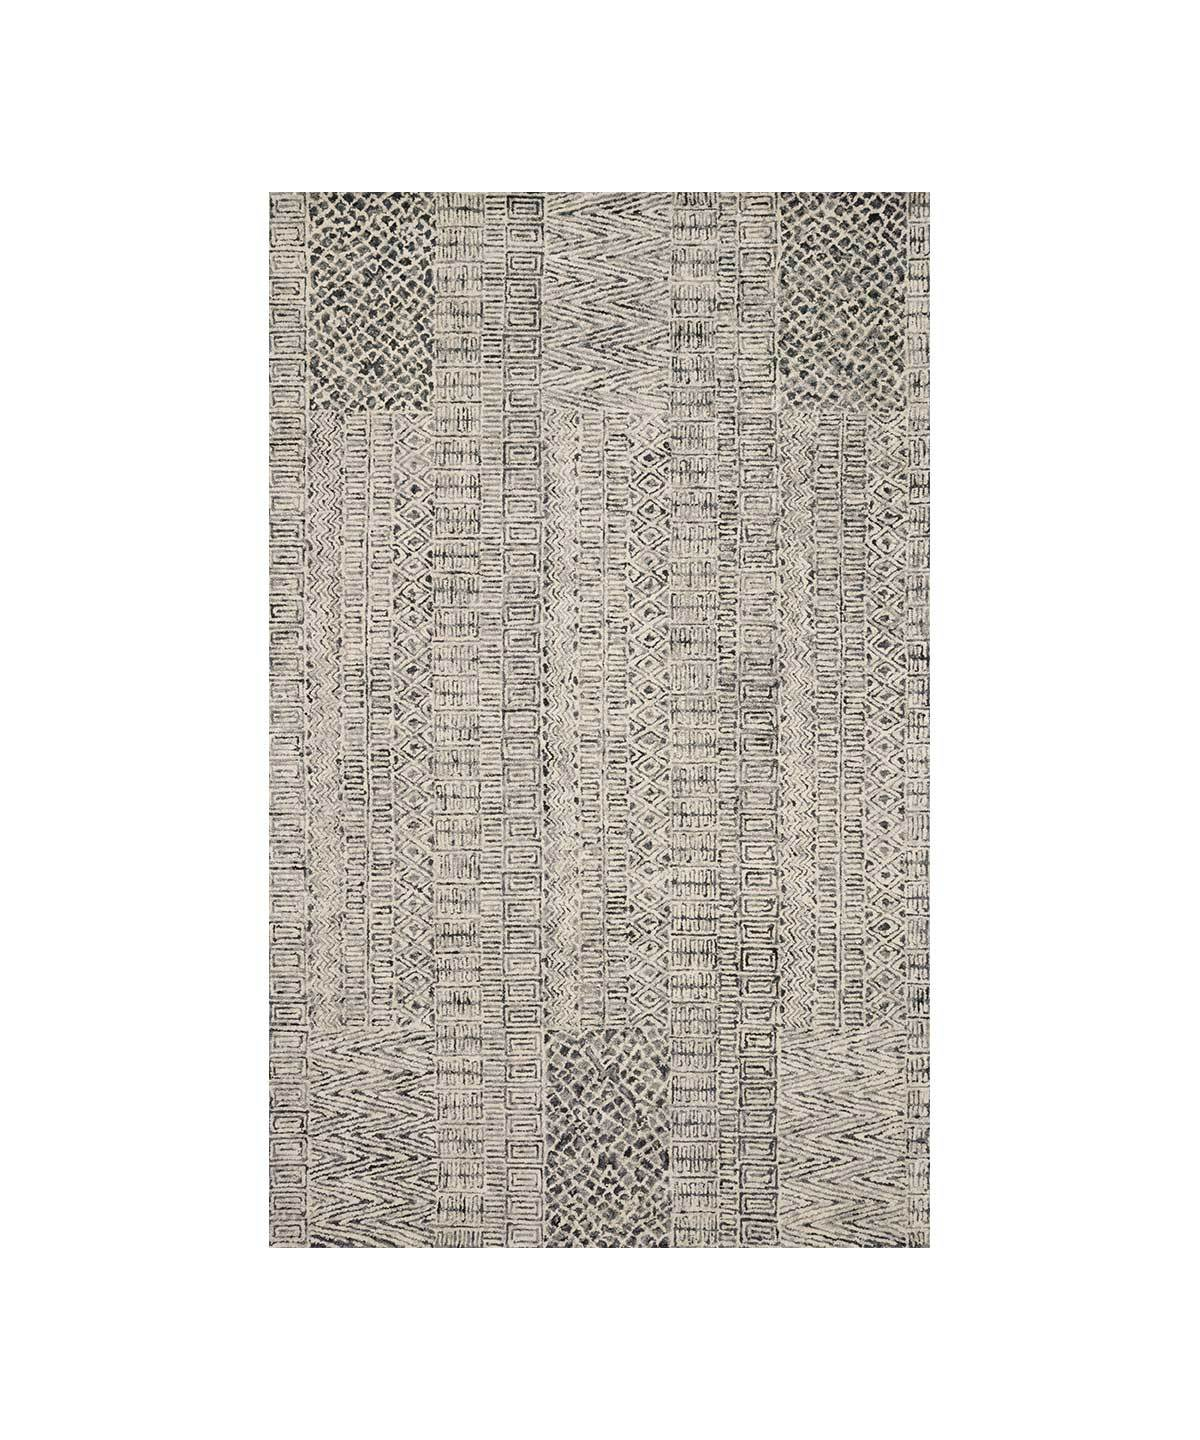 Peregrine Rug in Charcoal by Loloi | TRNK